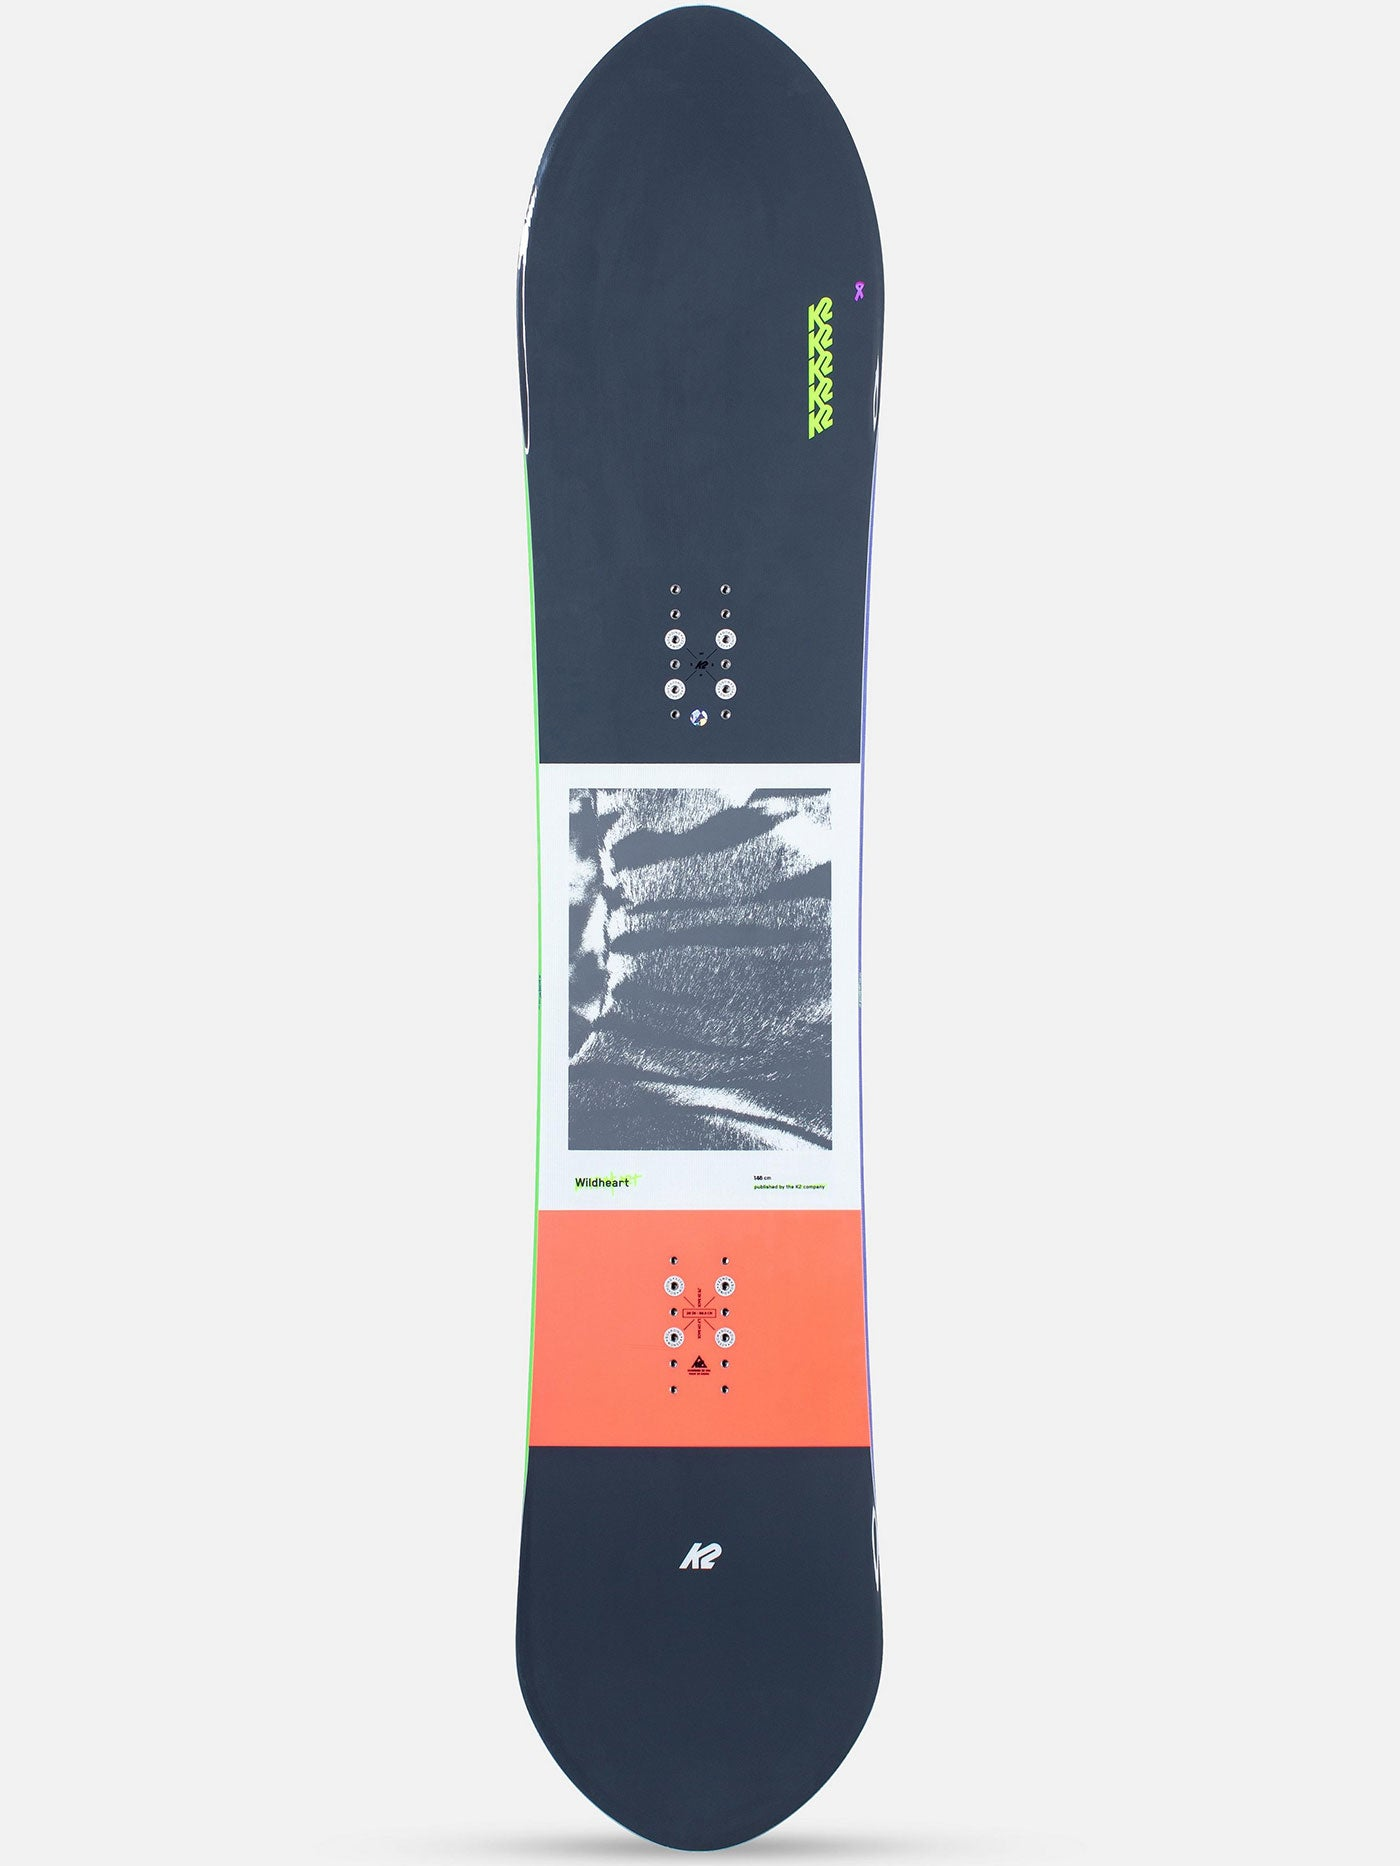 Wildheart Snowboard (Women)